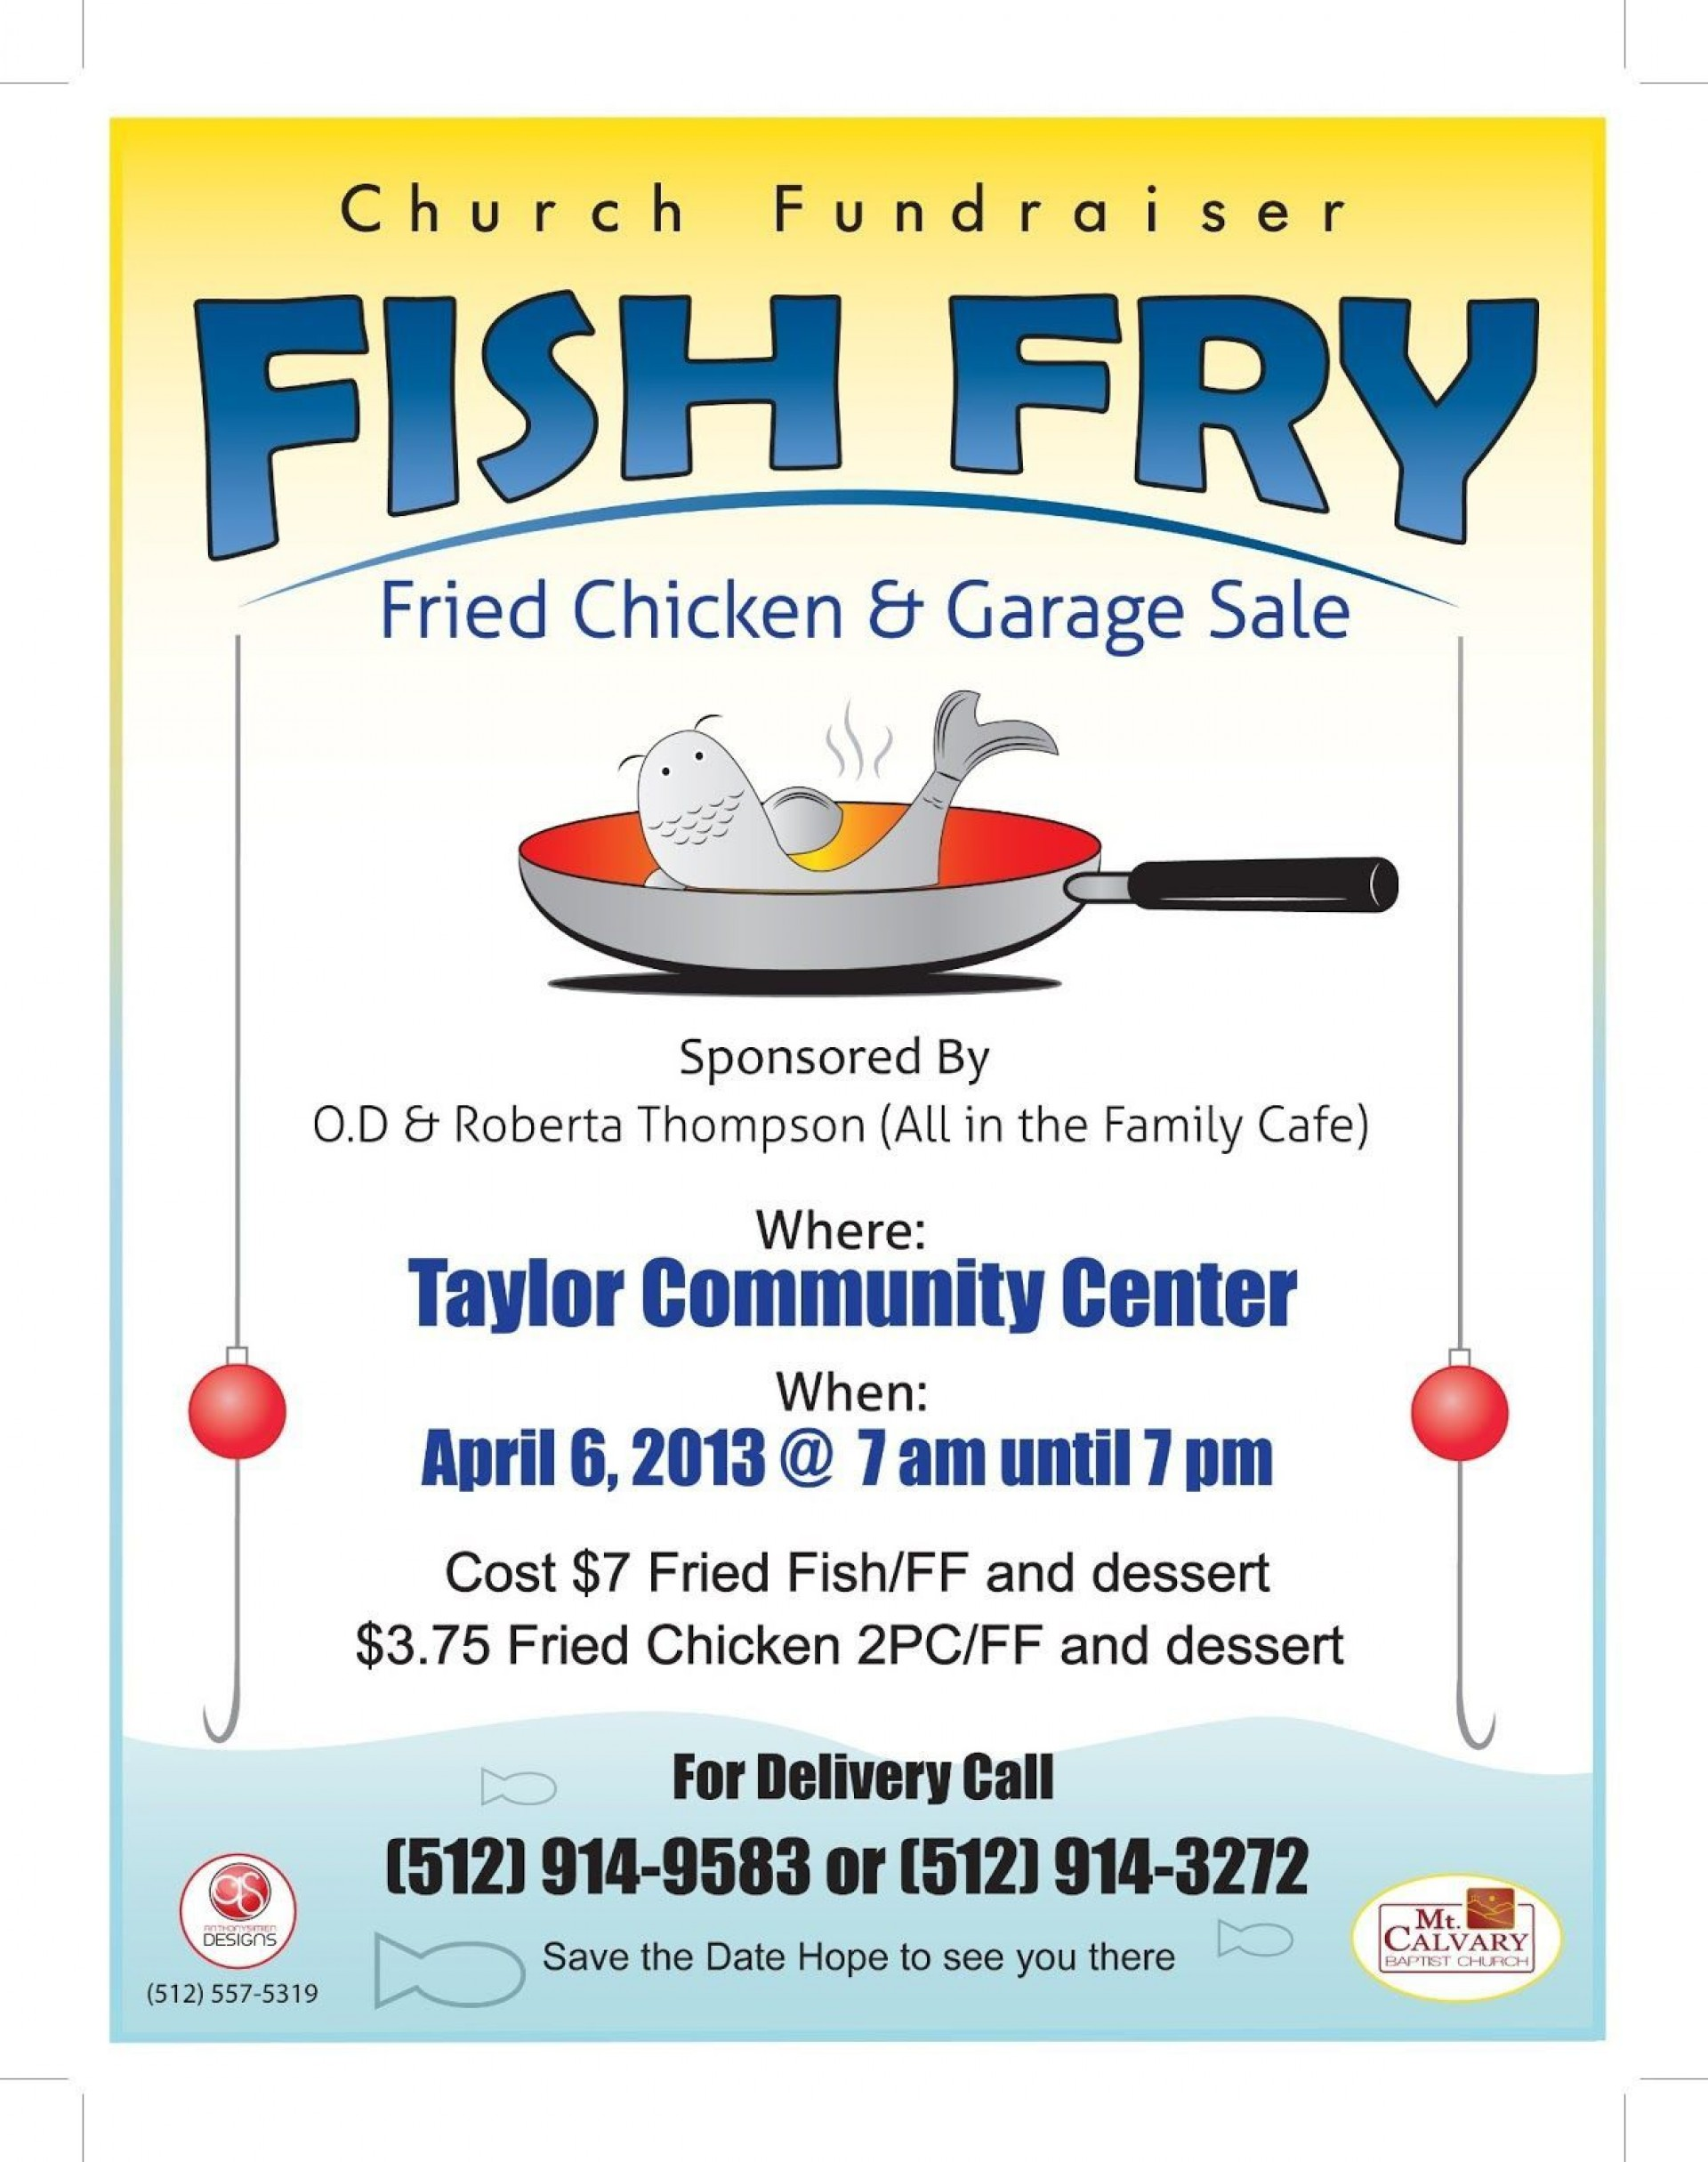 007 Fascinating Fish Fry Flyer Template Design  Printable Free Powerpoint Psd1920